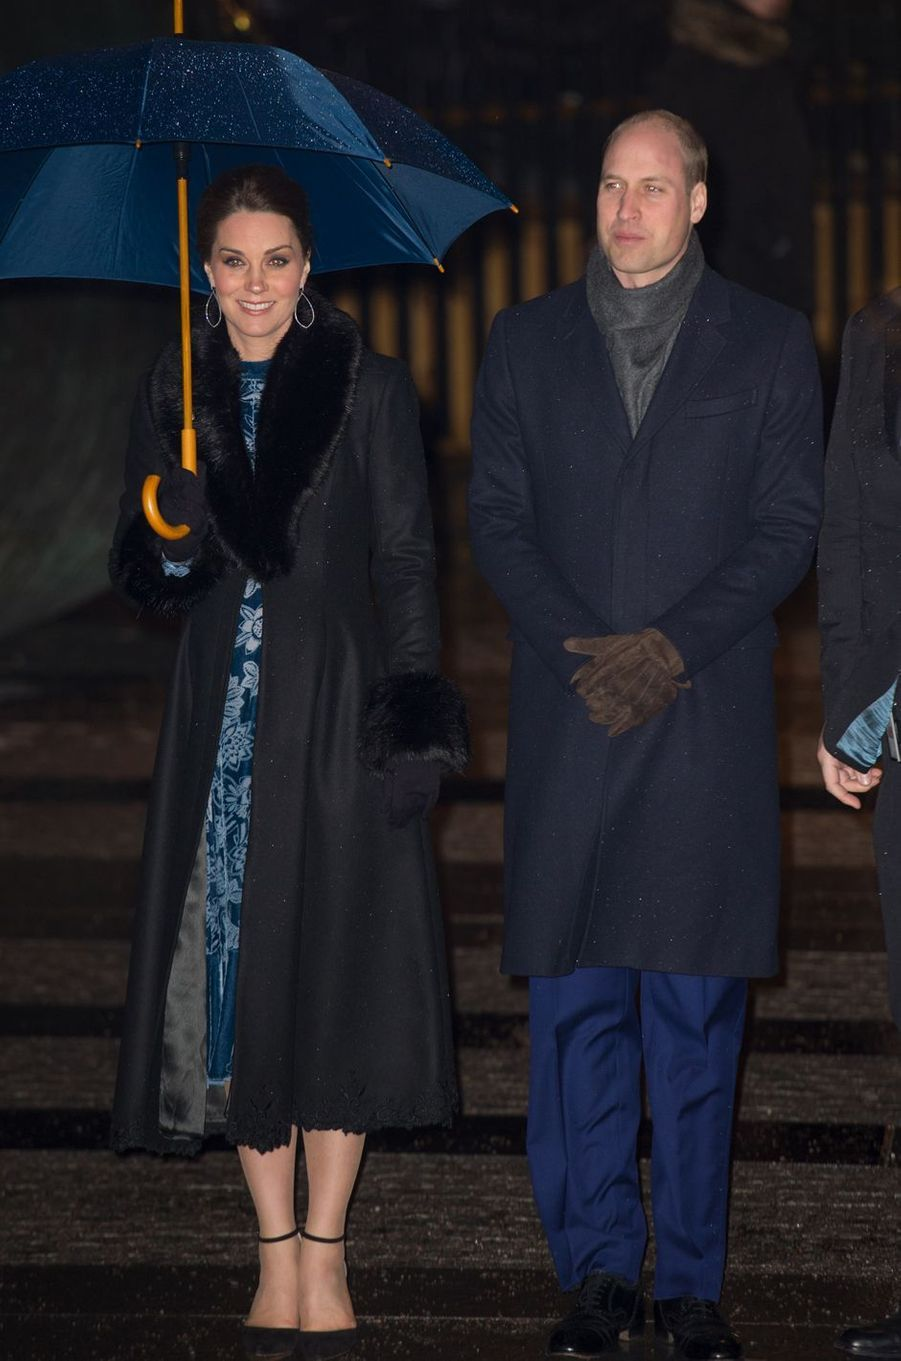 La duchesse Catherine de Cambridge et le prince William à Stockholm, le 31 janvier 2018